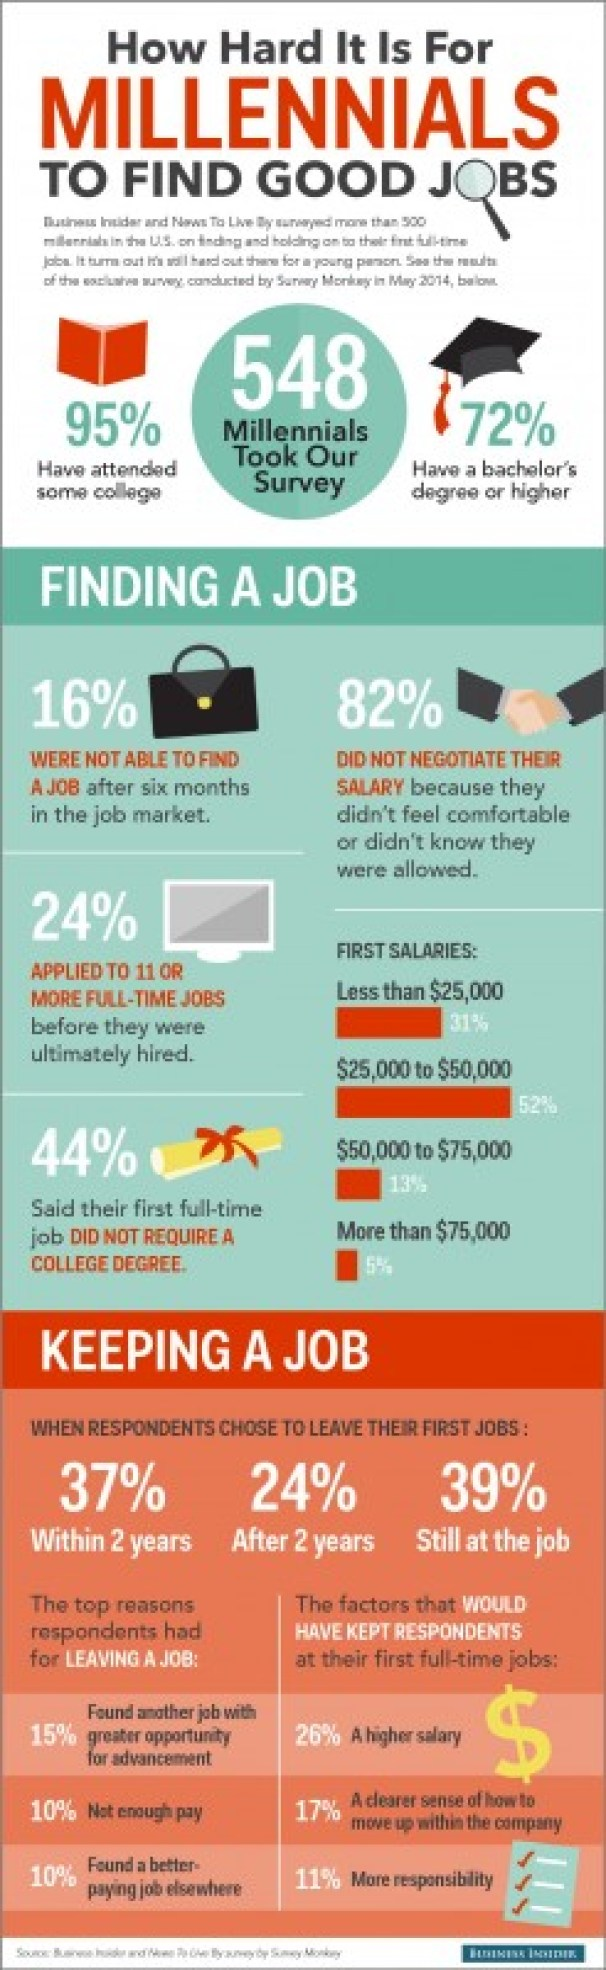 how hard it is for millennials to find good jobs infographic